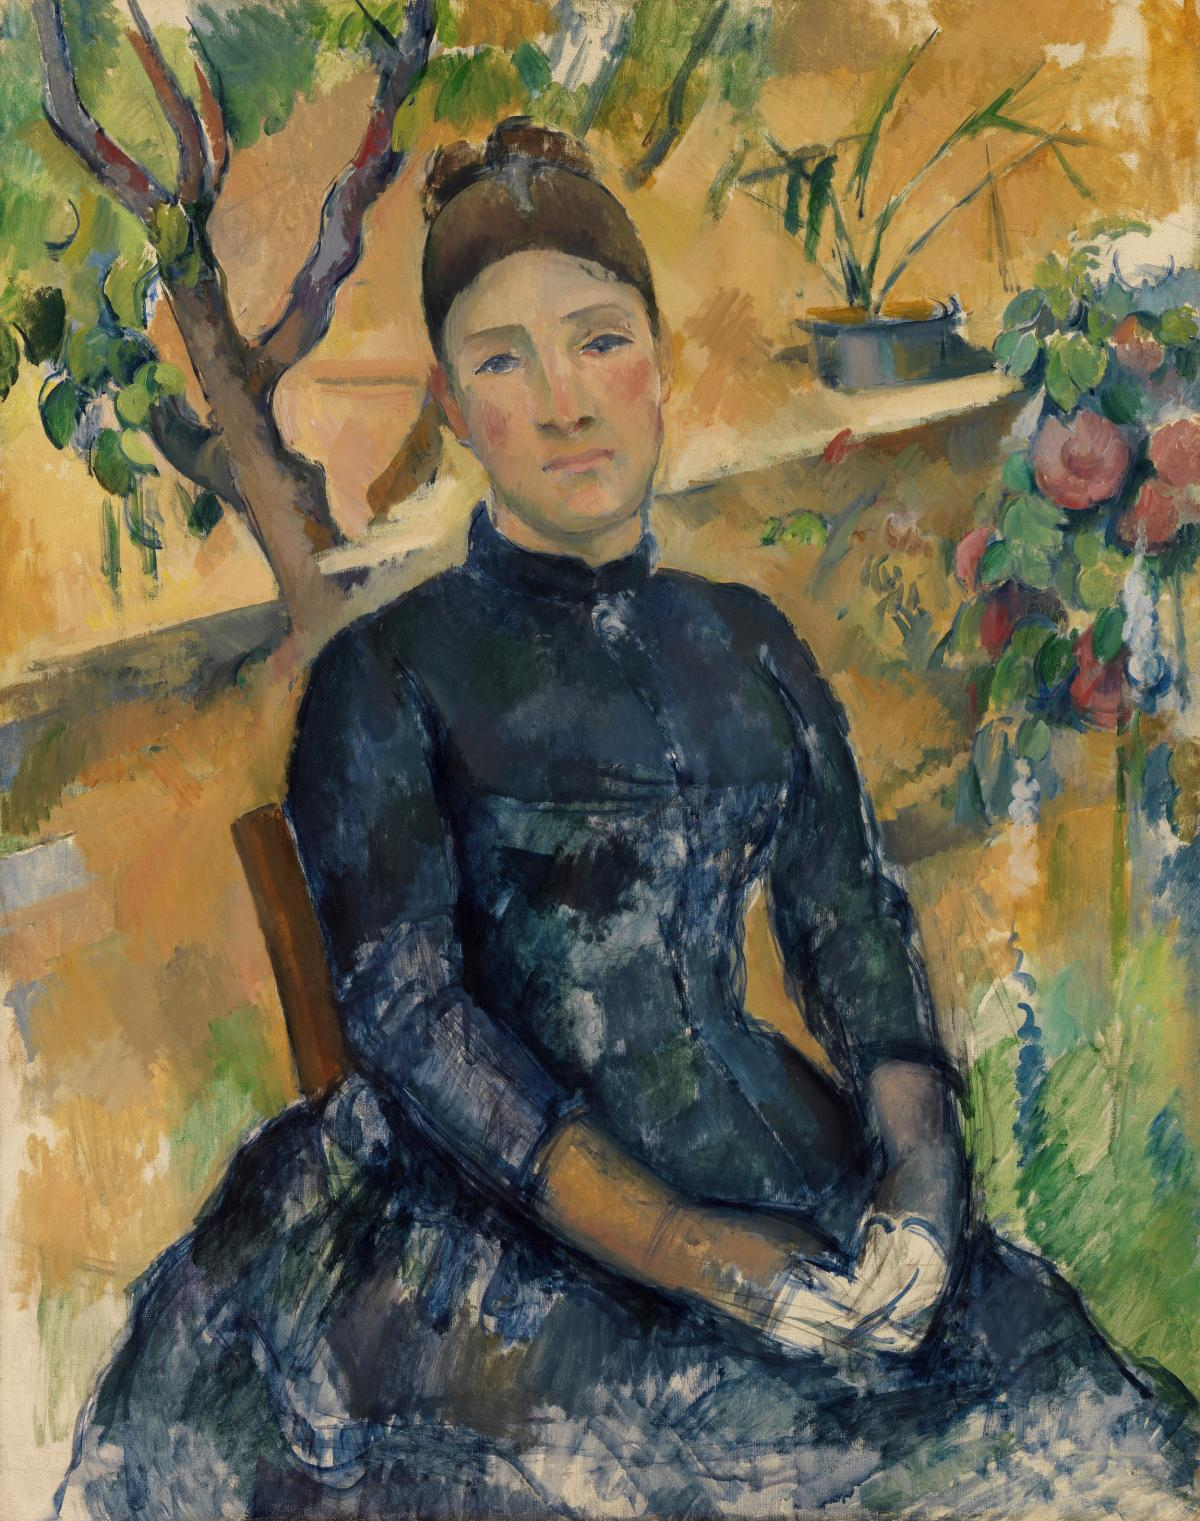 Madame Cézanne (Hortense Fiquet, 1850–1922) in the Conservatory (1891) by Paul Cézanne. Original from The MET Museum.  #426027